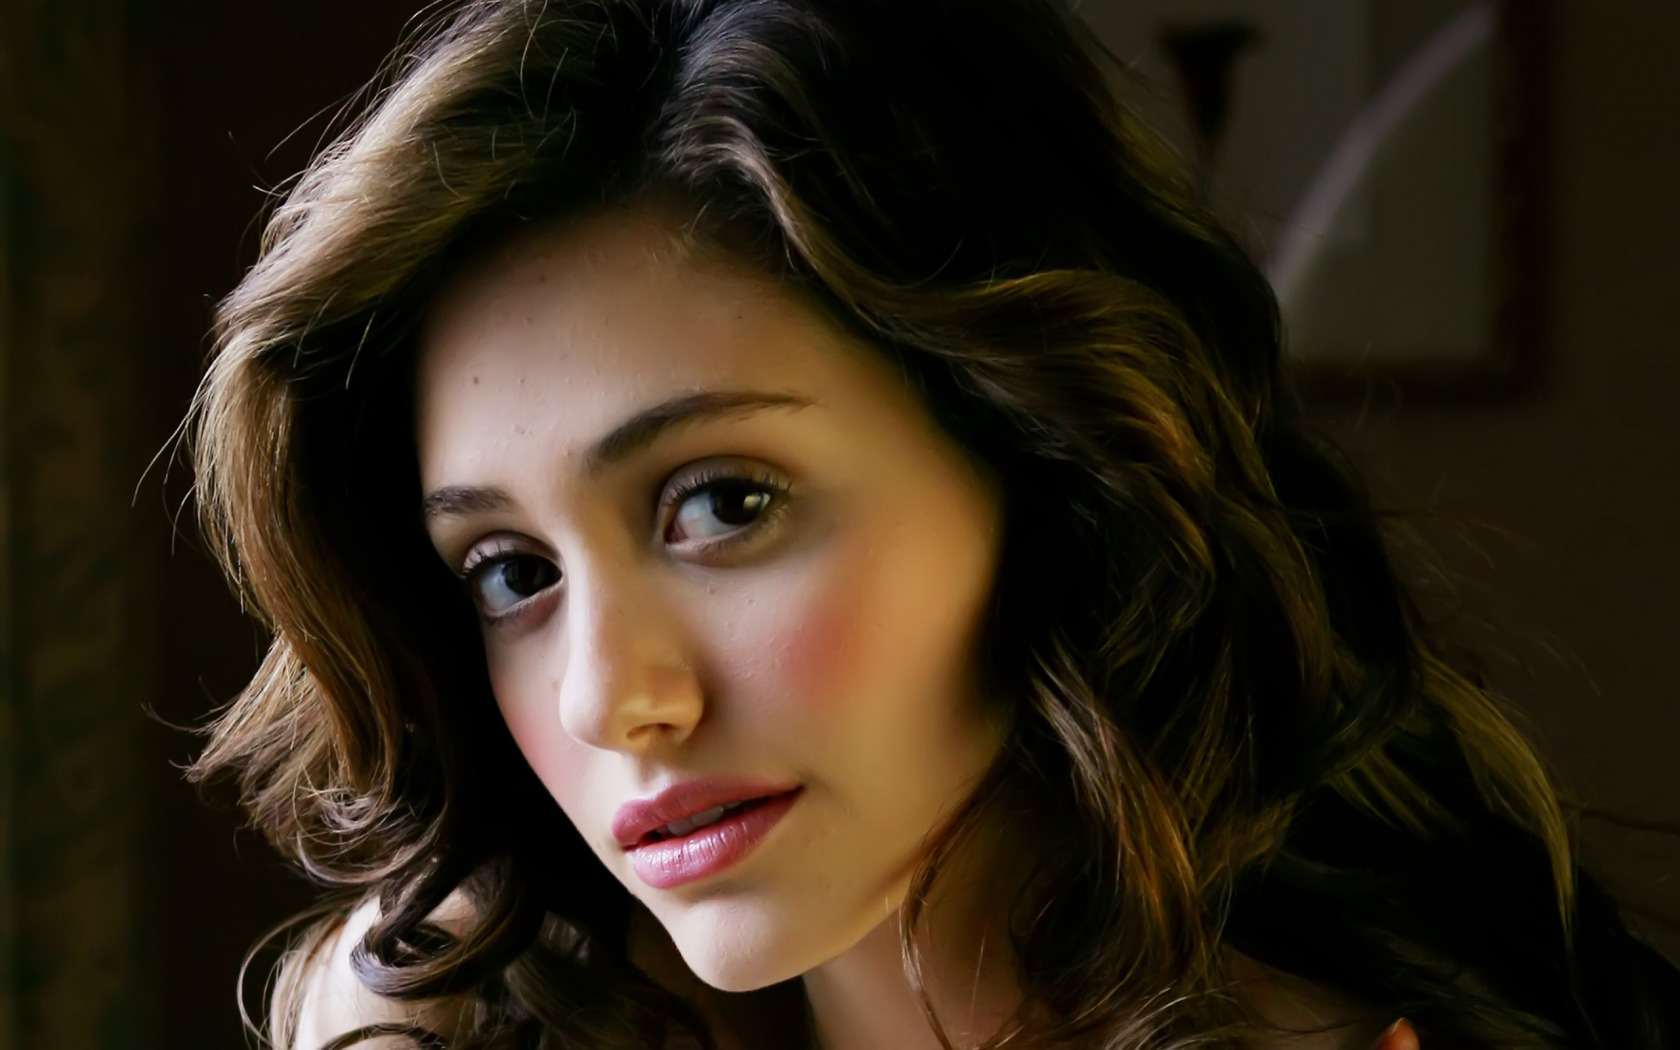 Emmy rossum hd wallpapers movie hd wallpapers emmy rossum hd wallpapers voltagebd Images